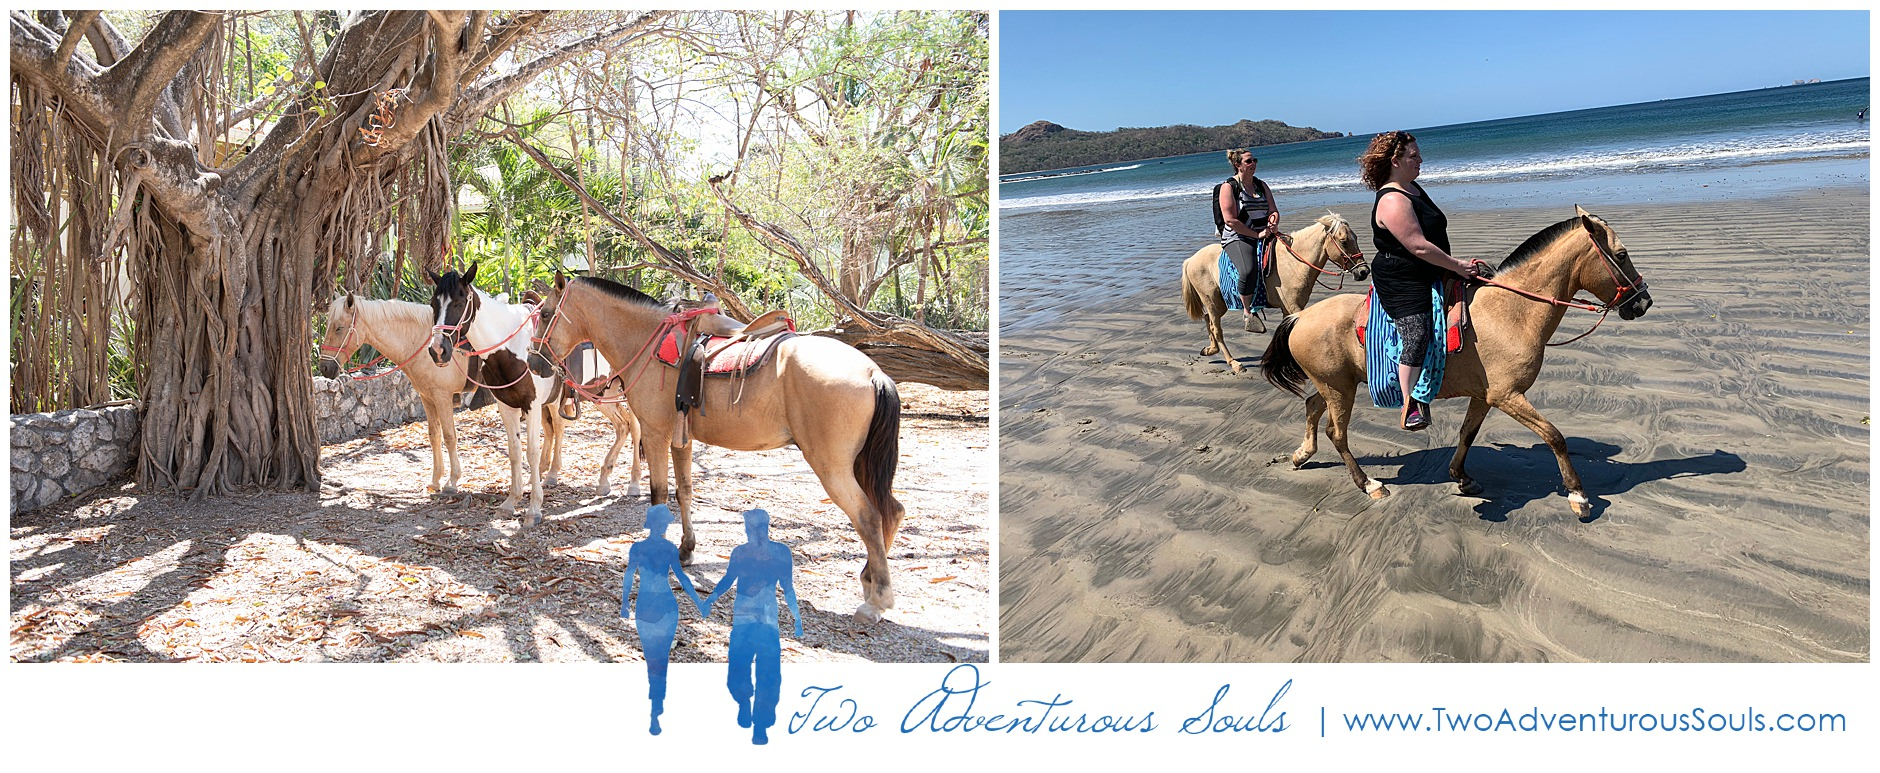 Travel Tuesday, Costa Rica Wedding Photographers, Two Adventurous Souls 040919_0010.jpg